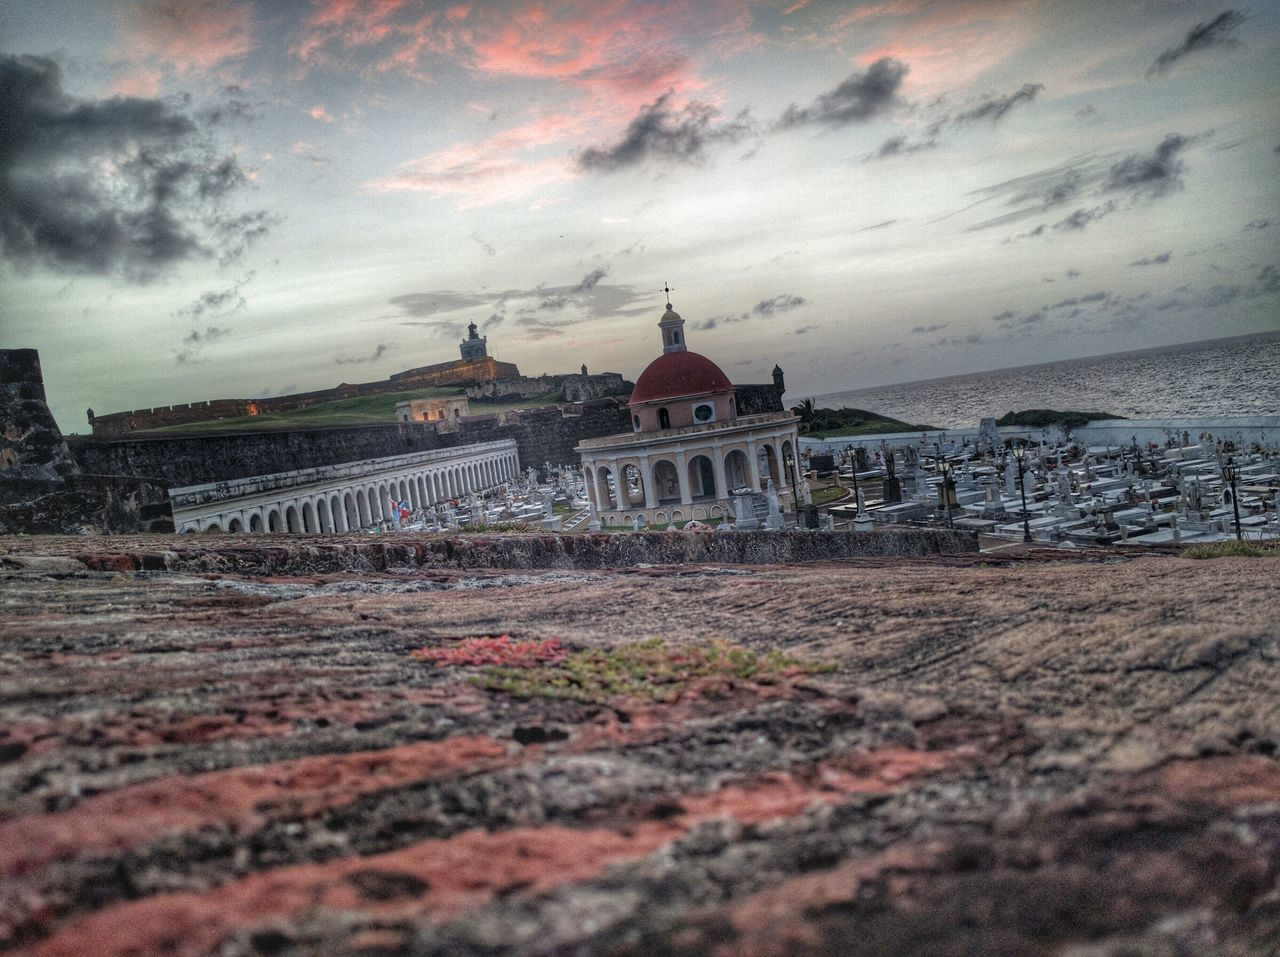 architecture, built structure, building exterior, cloud - sky, sky, sunset, spirituality, religion, travel destinations, history, place of worship, outdoors, no people, dome, nature, water, city, day